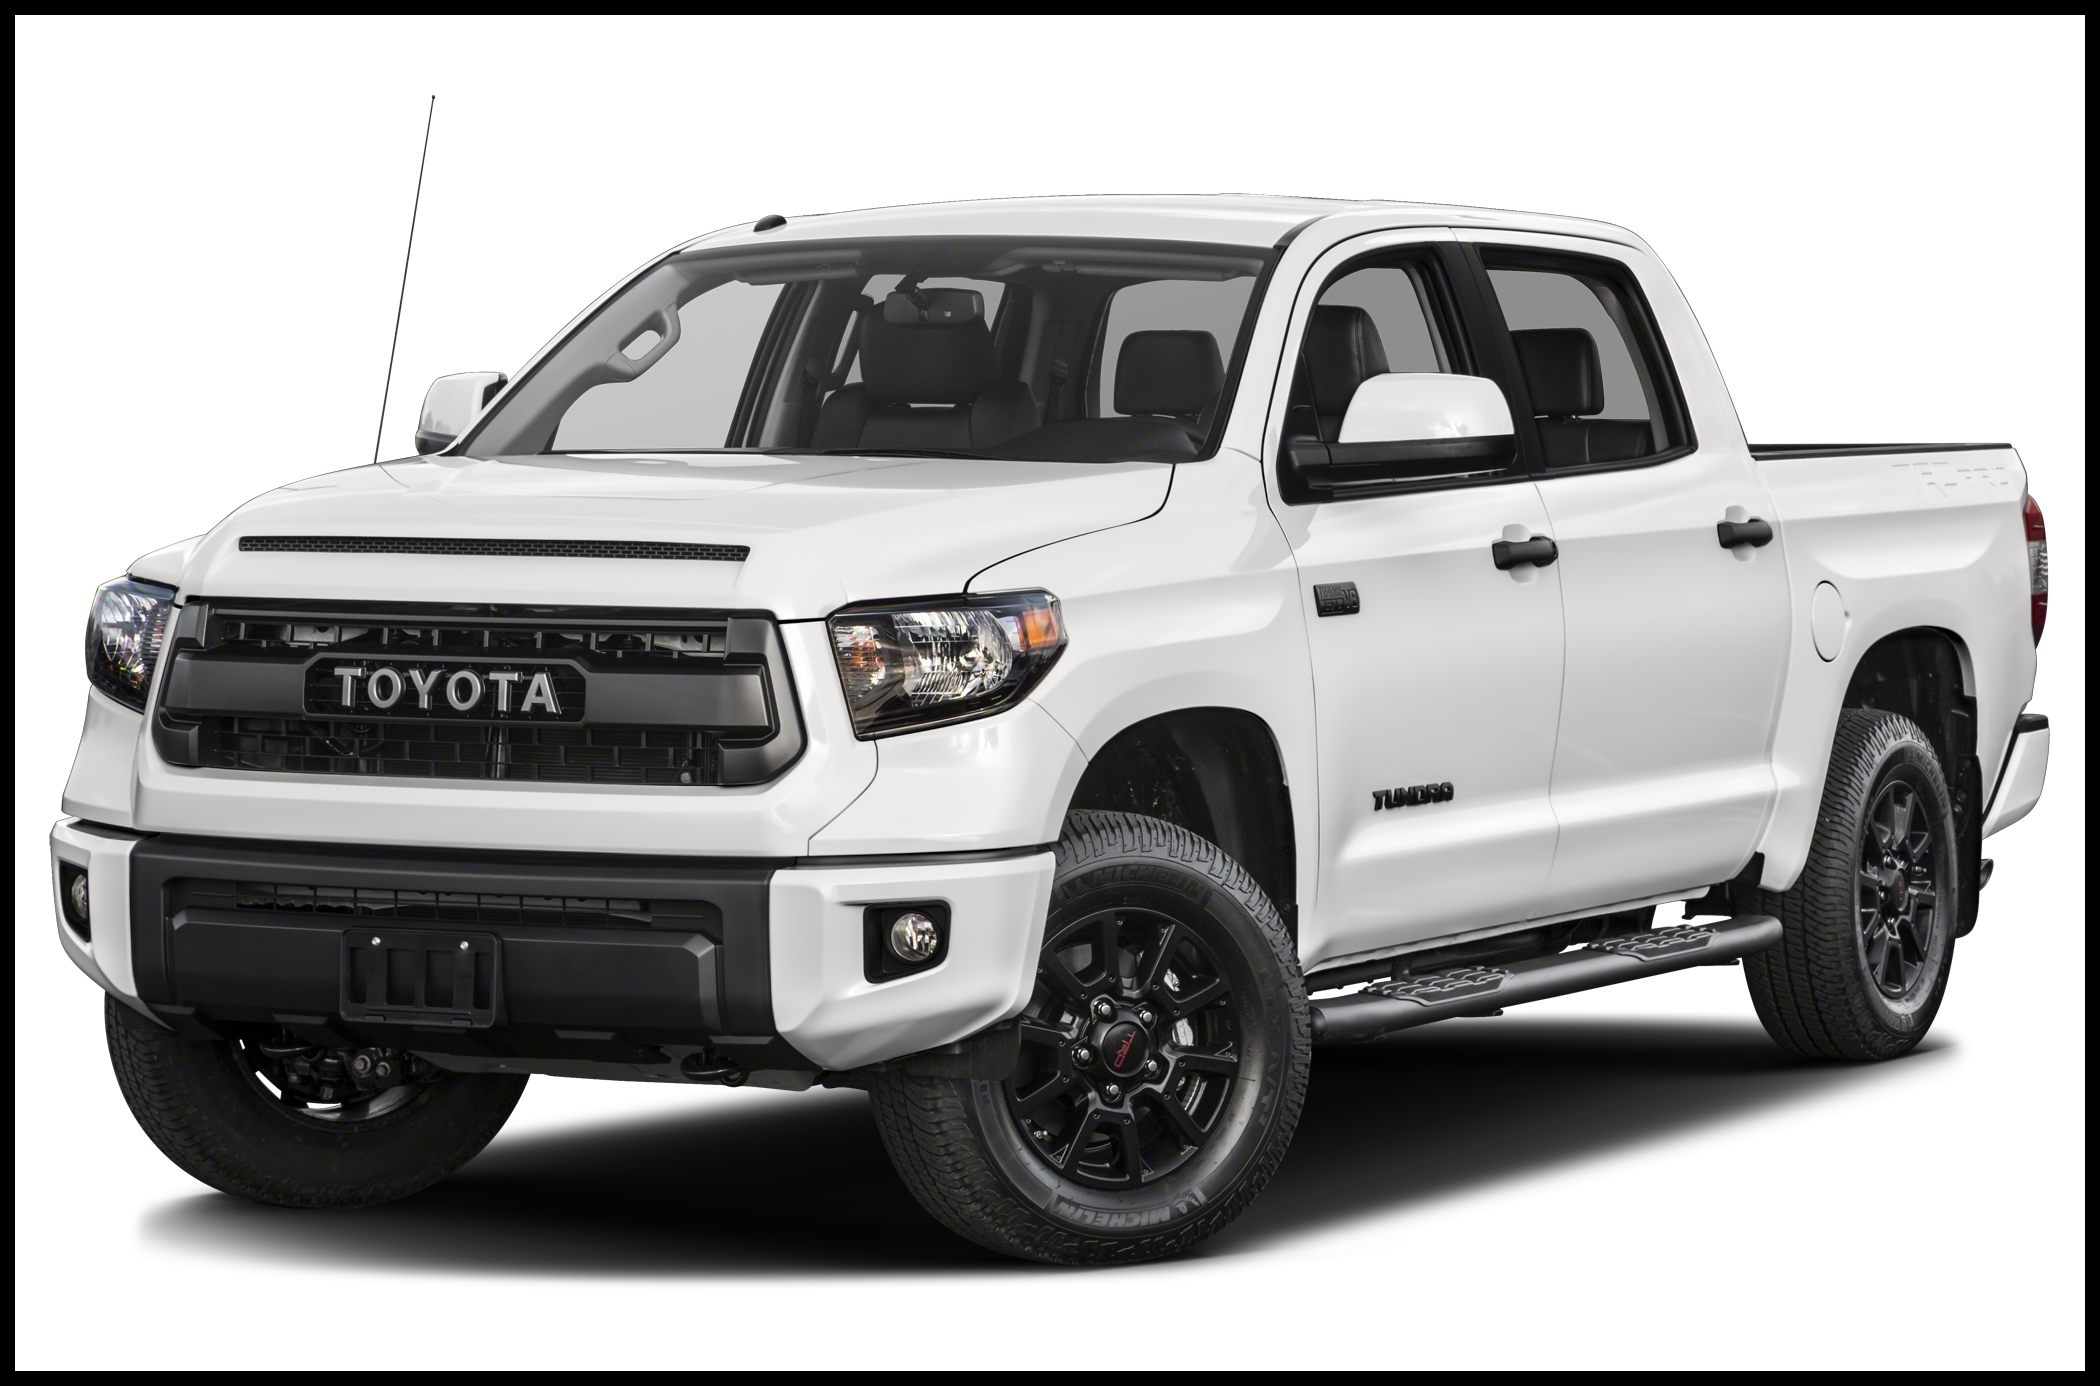 2017 Toyota Tundra TRD Pro 5 7L V8 4x4 CrewMax 5 6 ft box 145 7 in WB Specs and Prices